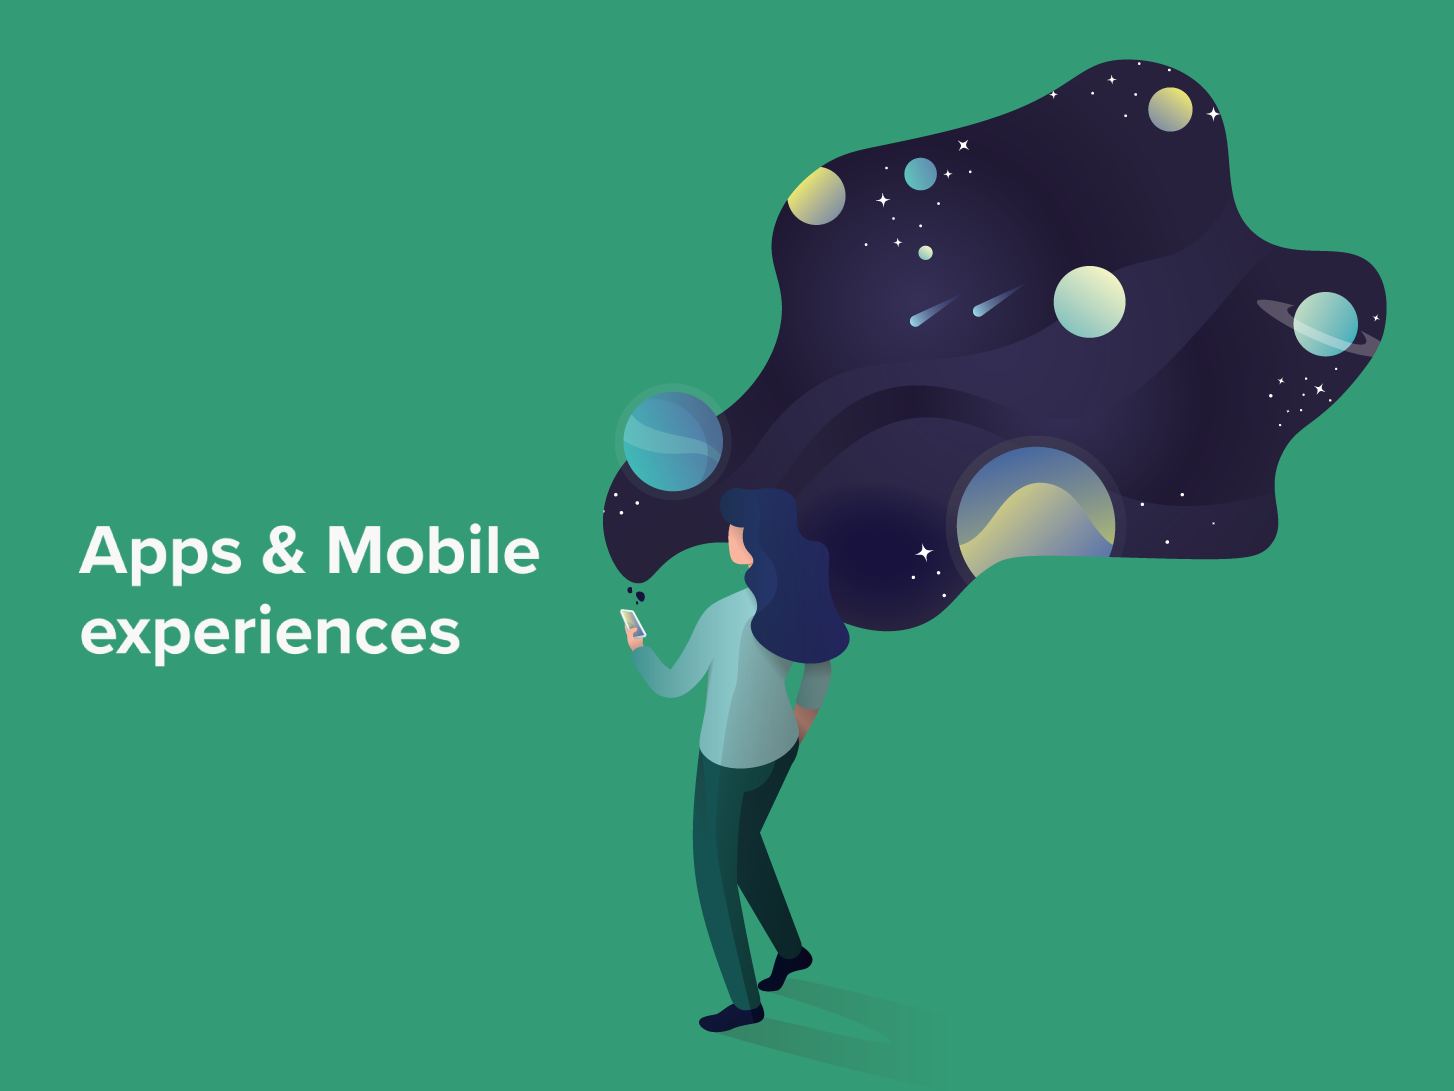 Apps & Mobile experiences human experience univers mobile app apps illustrator design illustration